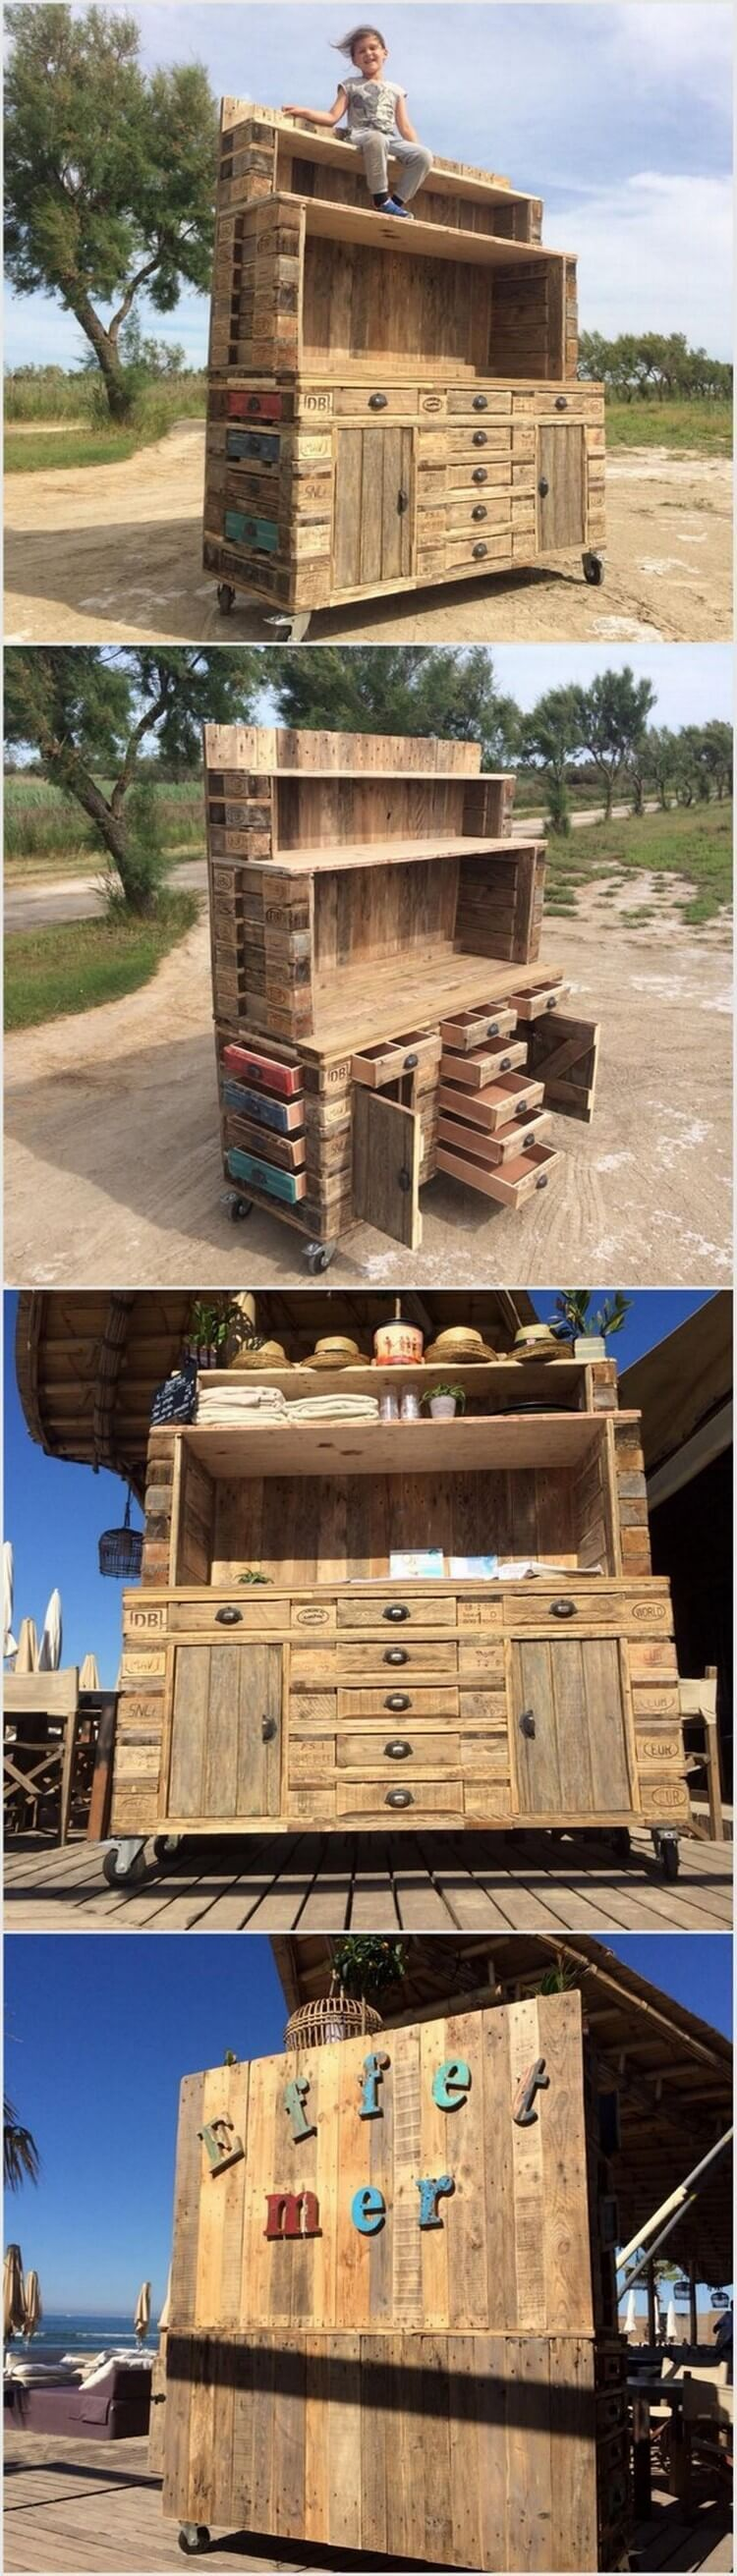 Ingenious Ways to Repurpose Old Wood Pallets